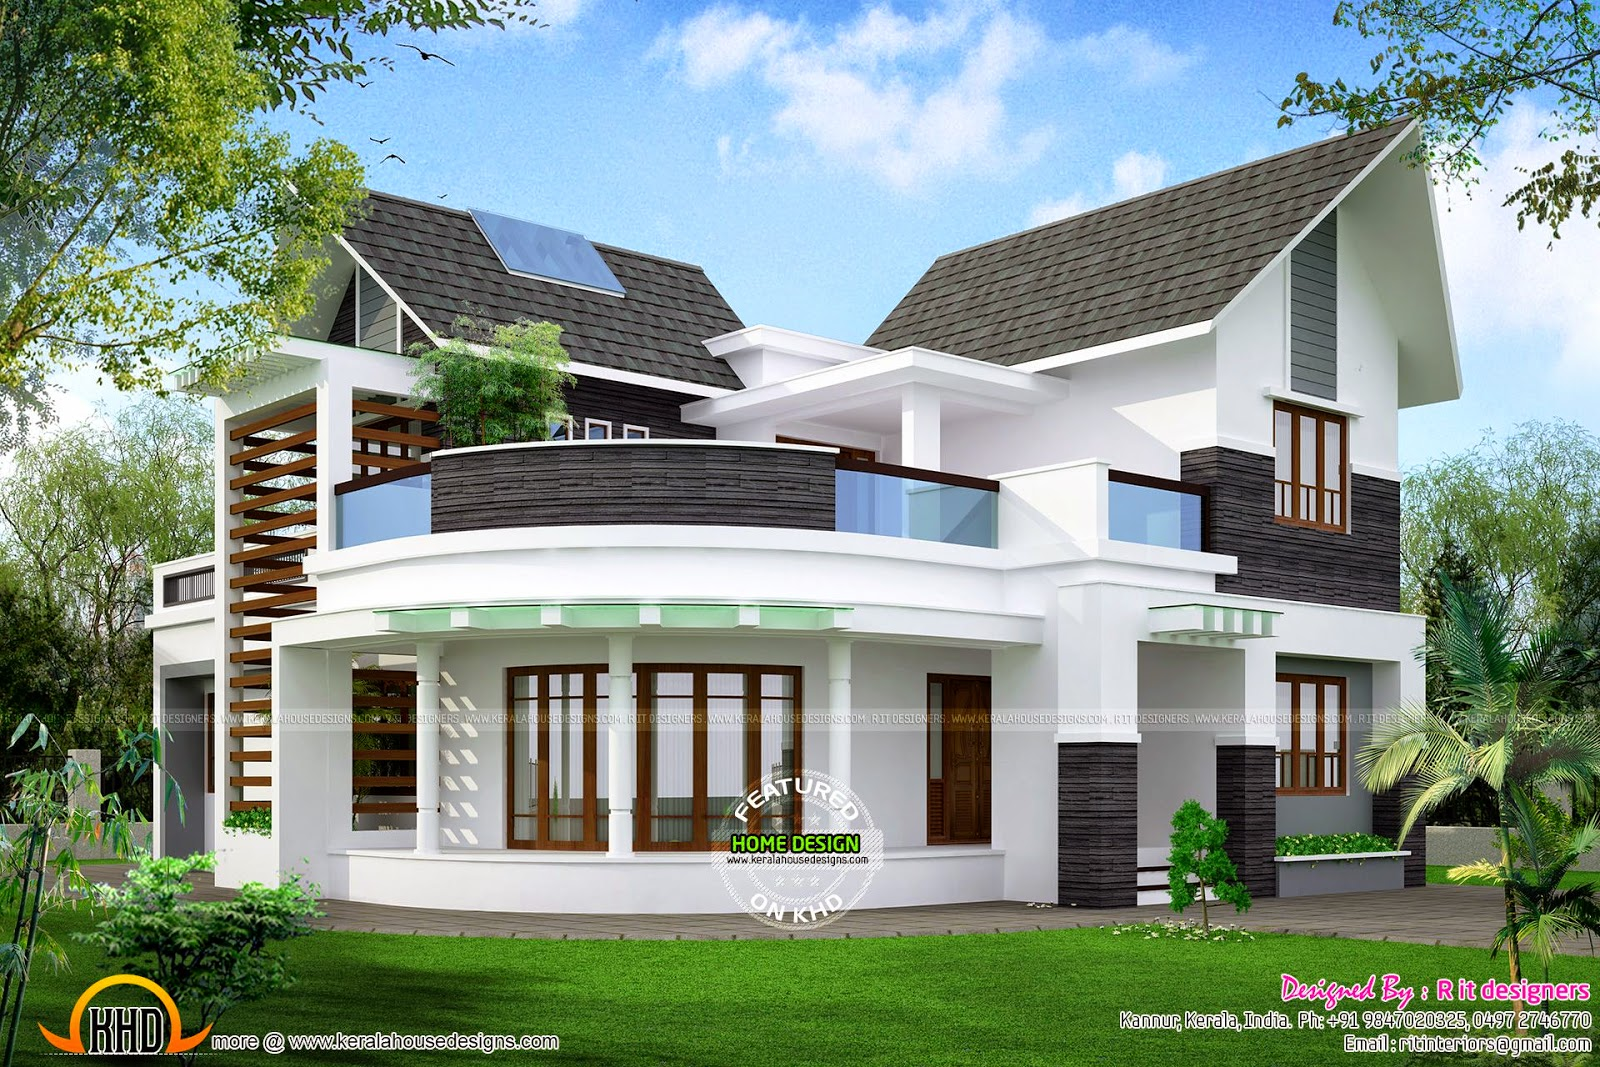 Modern unique 3 bedroom house design ground floor2 for Custom house plans designs